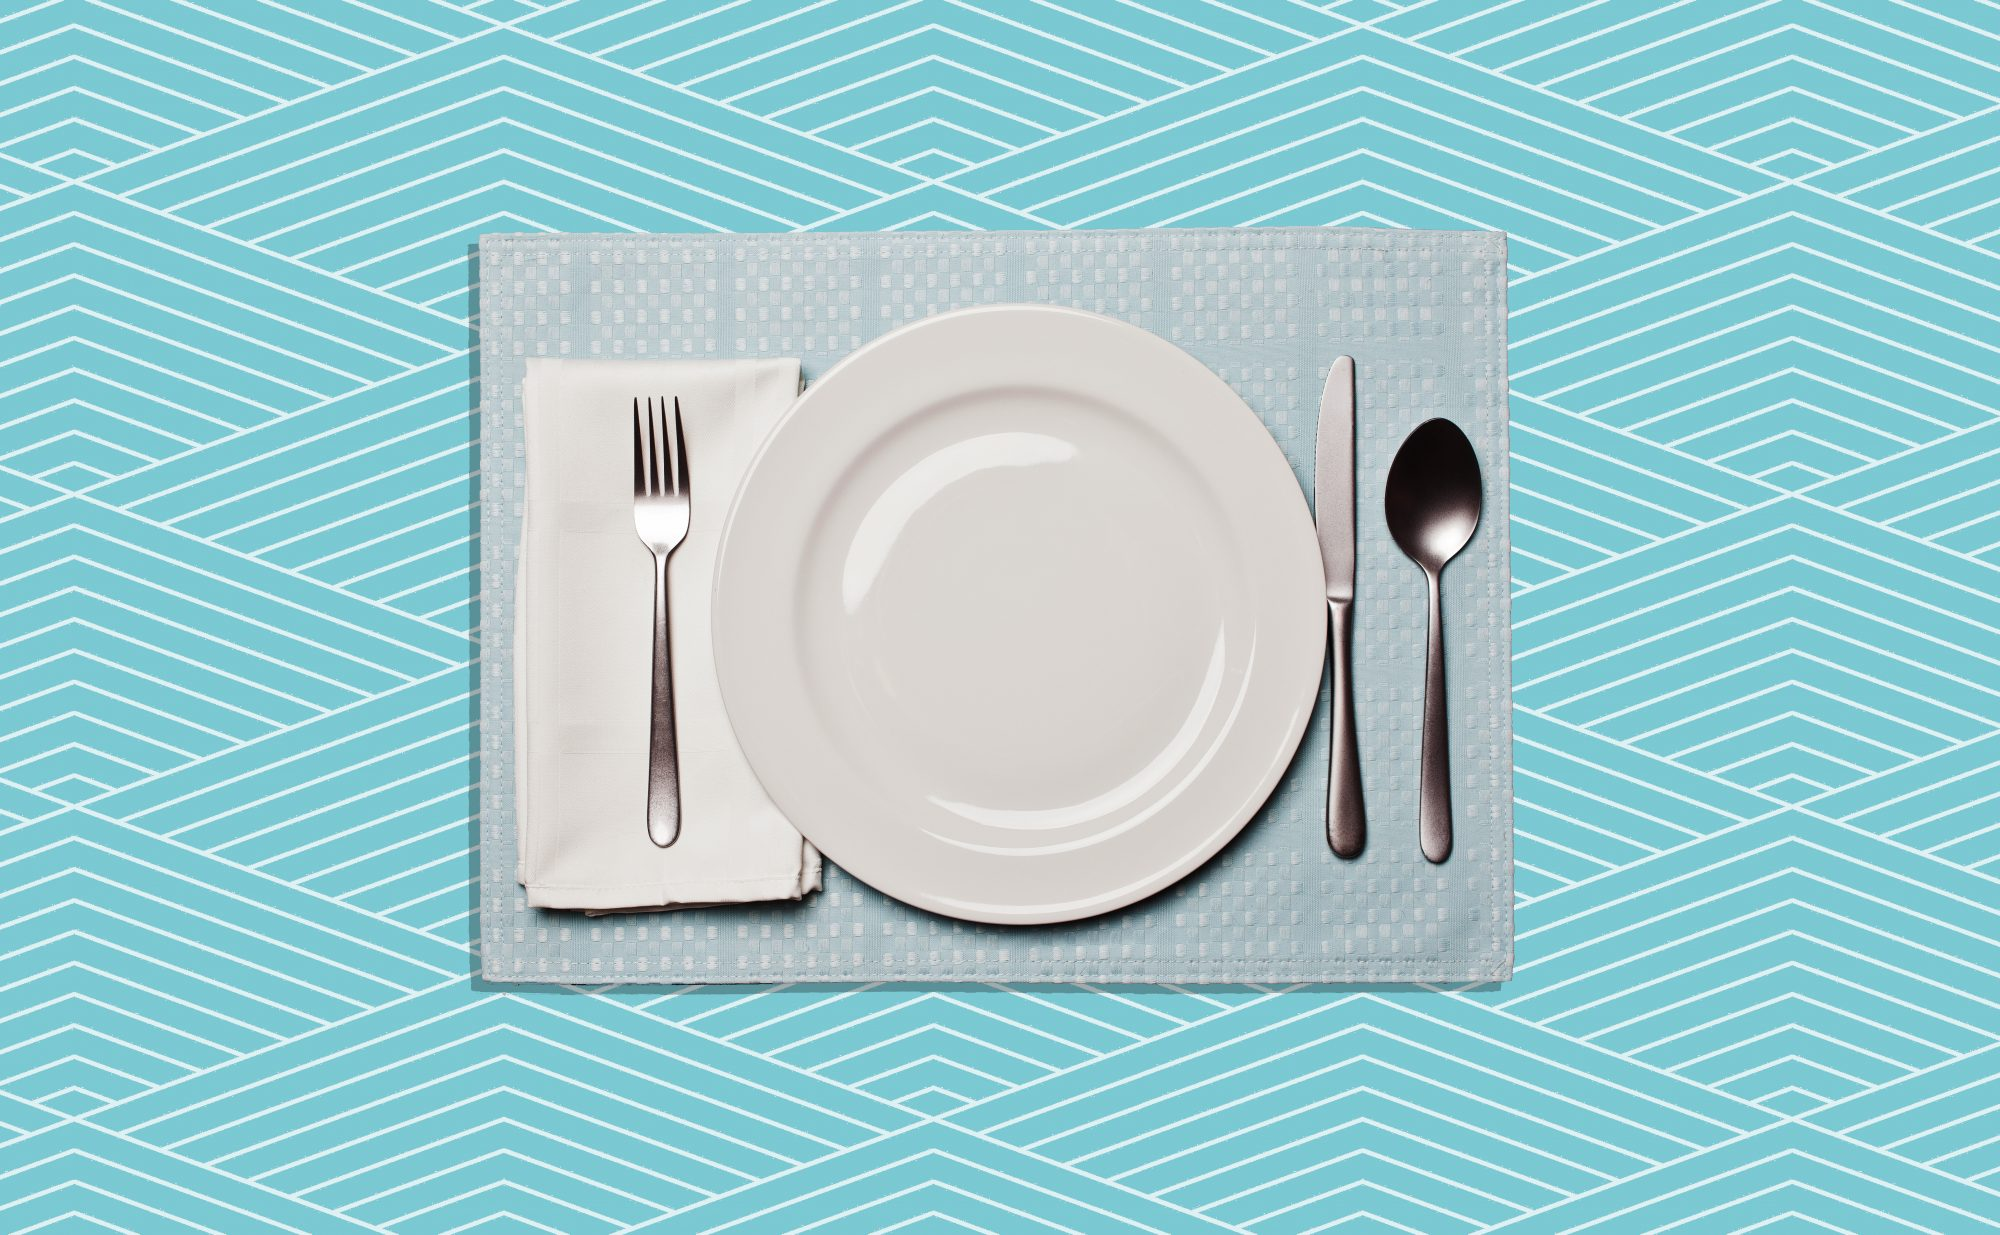 How to Set a Table, diagram of how to set a table properly